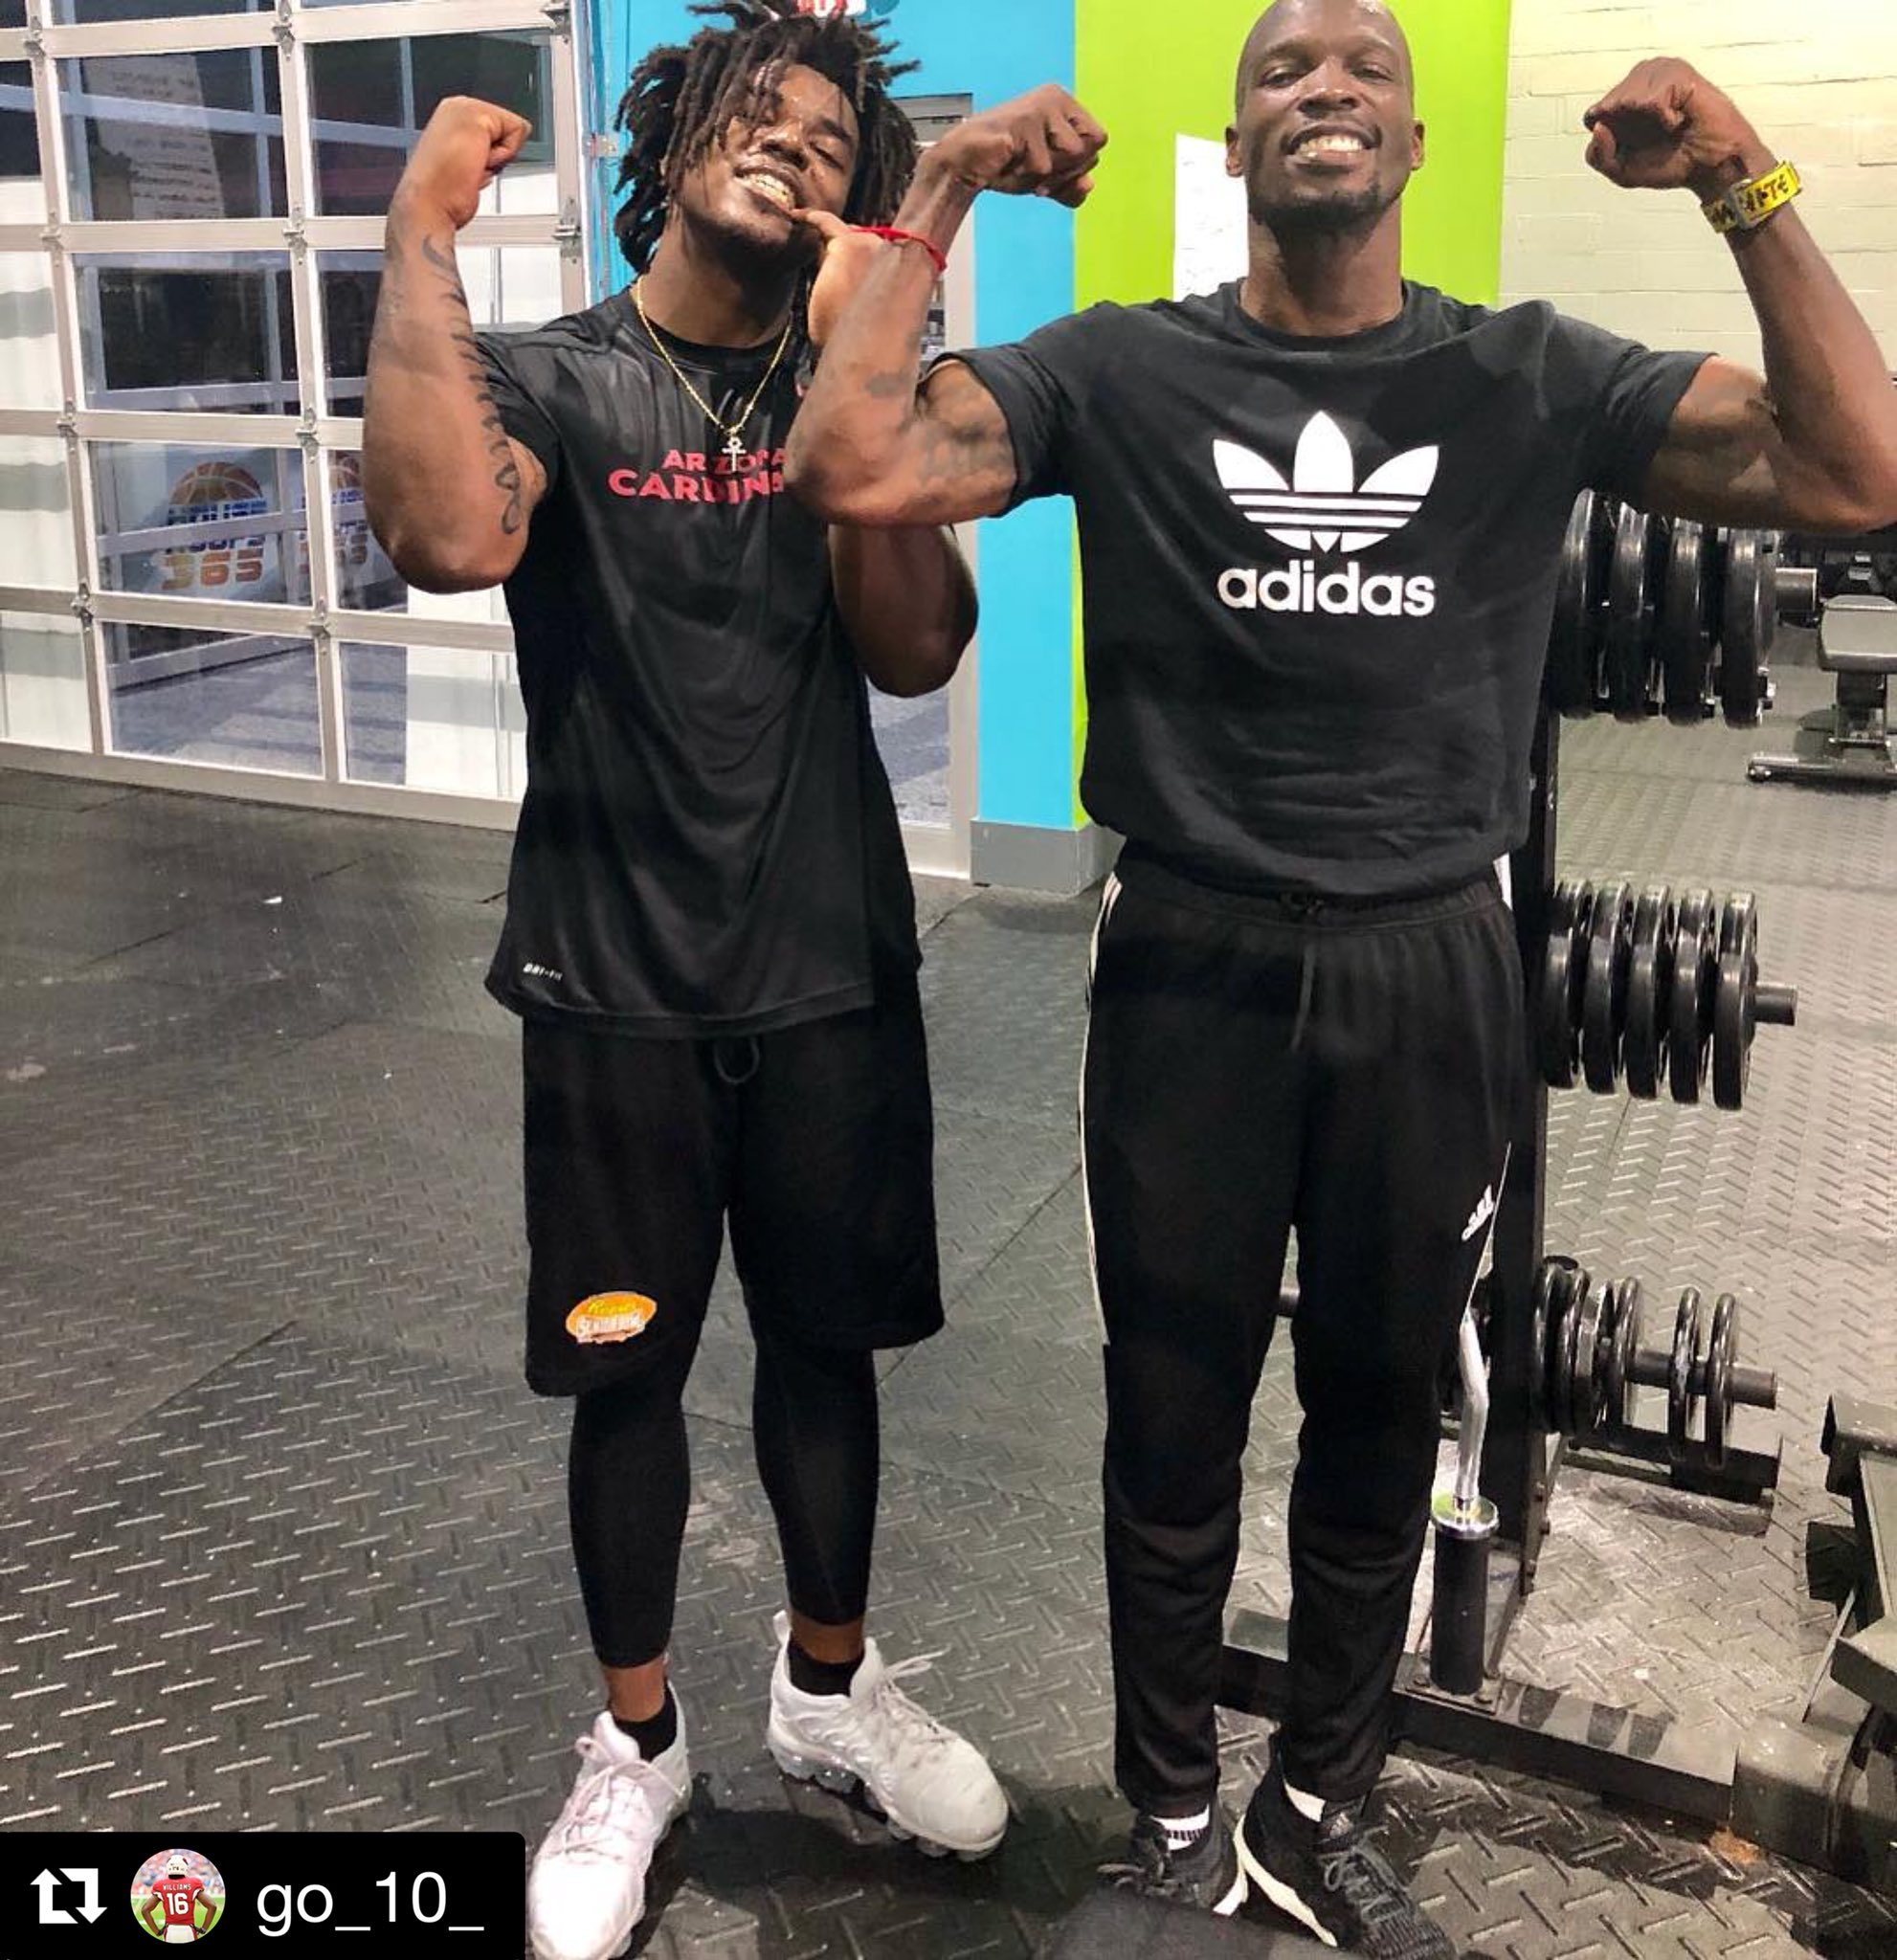 Two Chads working out: Chad Williams + Chad @ochocinco!   [Via @go_10_ on Instagram] https://t.co/ClMXgUh7jq